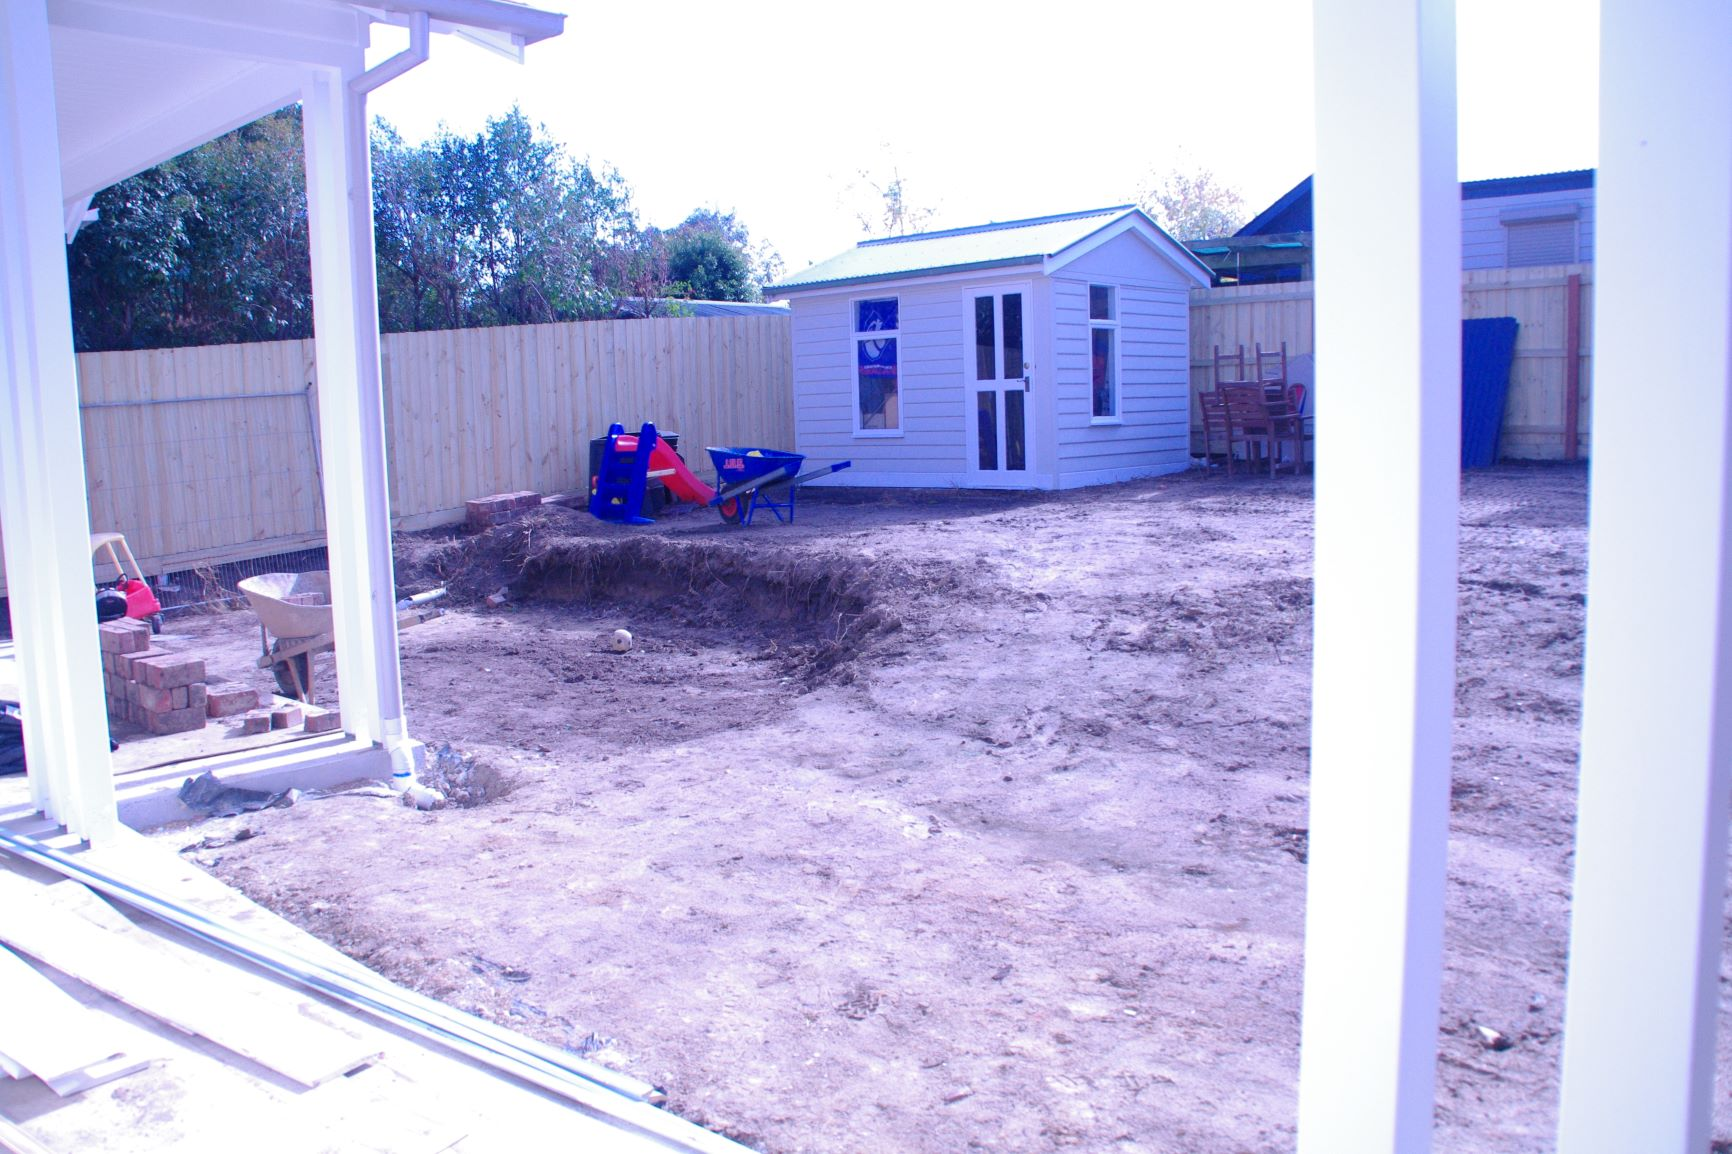 Reservior back garden, Cute garde shed, Before wall is built